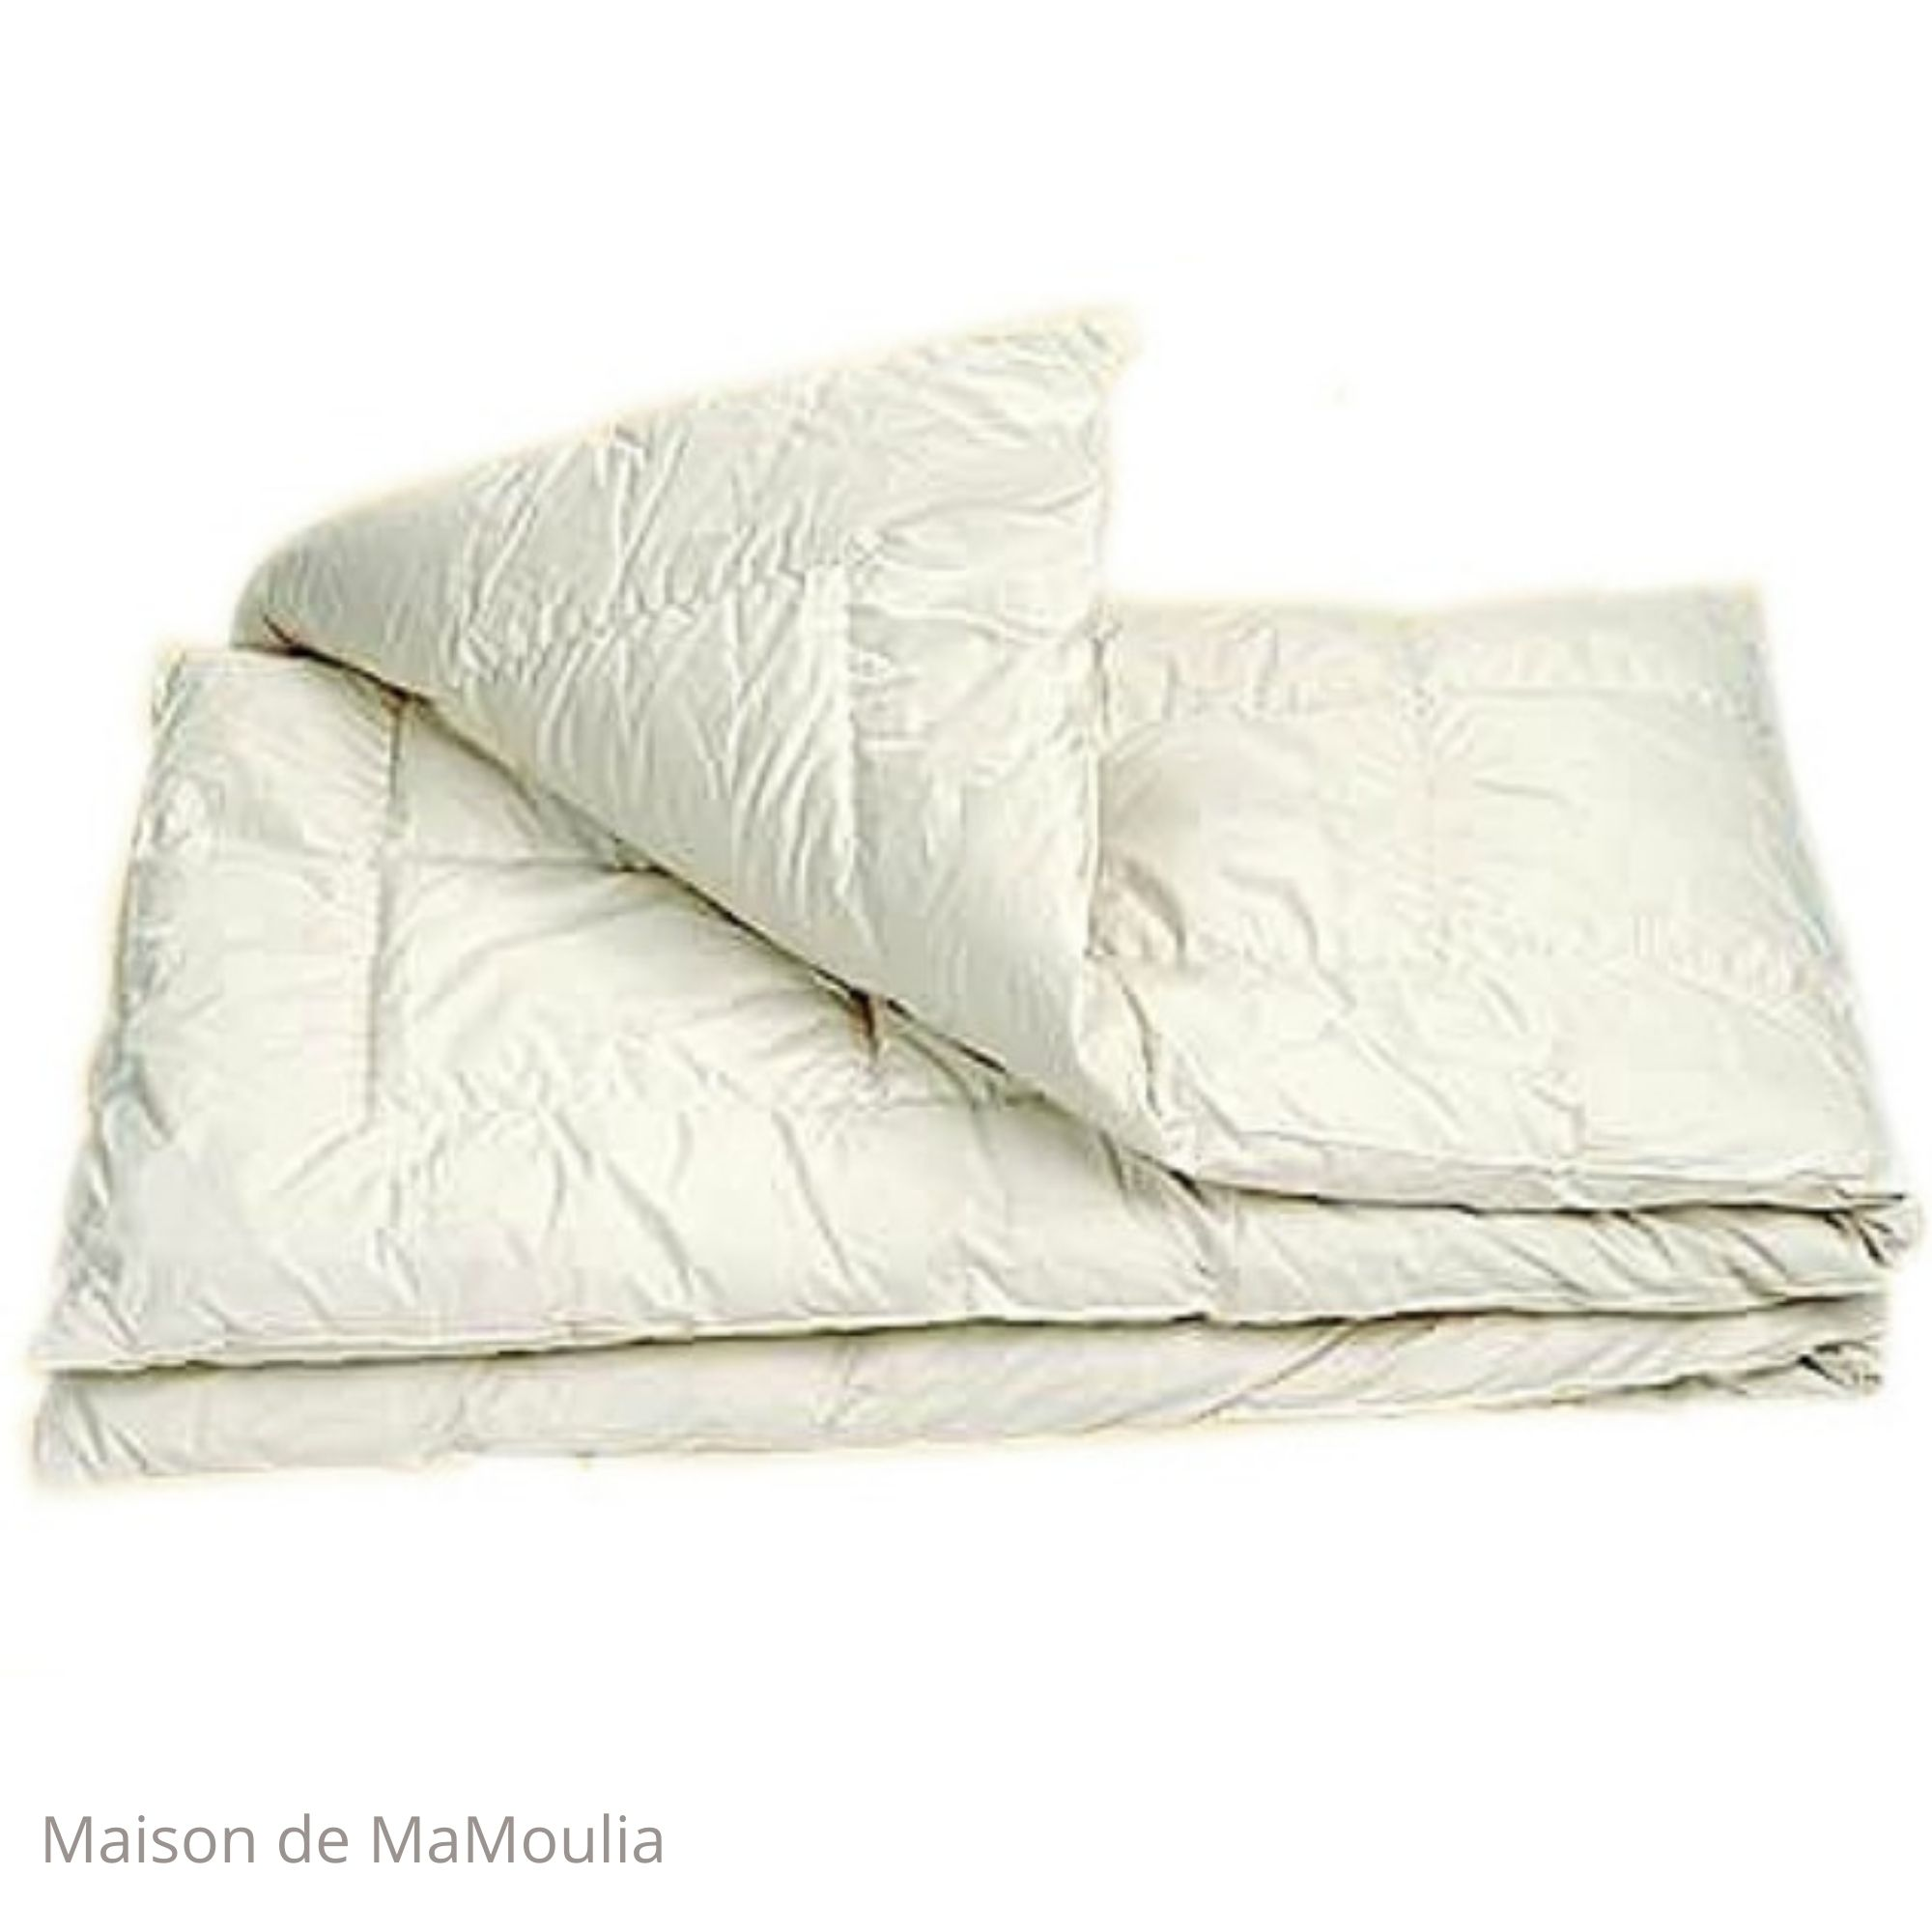 SALING - Couette - DUO - Coton bio/pure laine-Tailles differentes